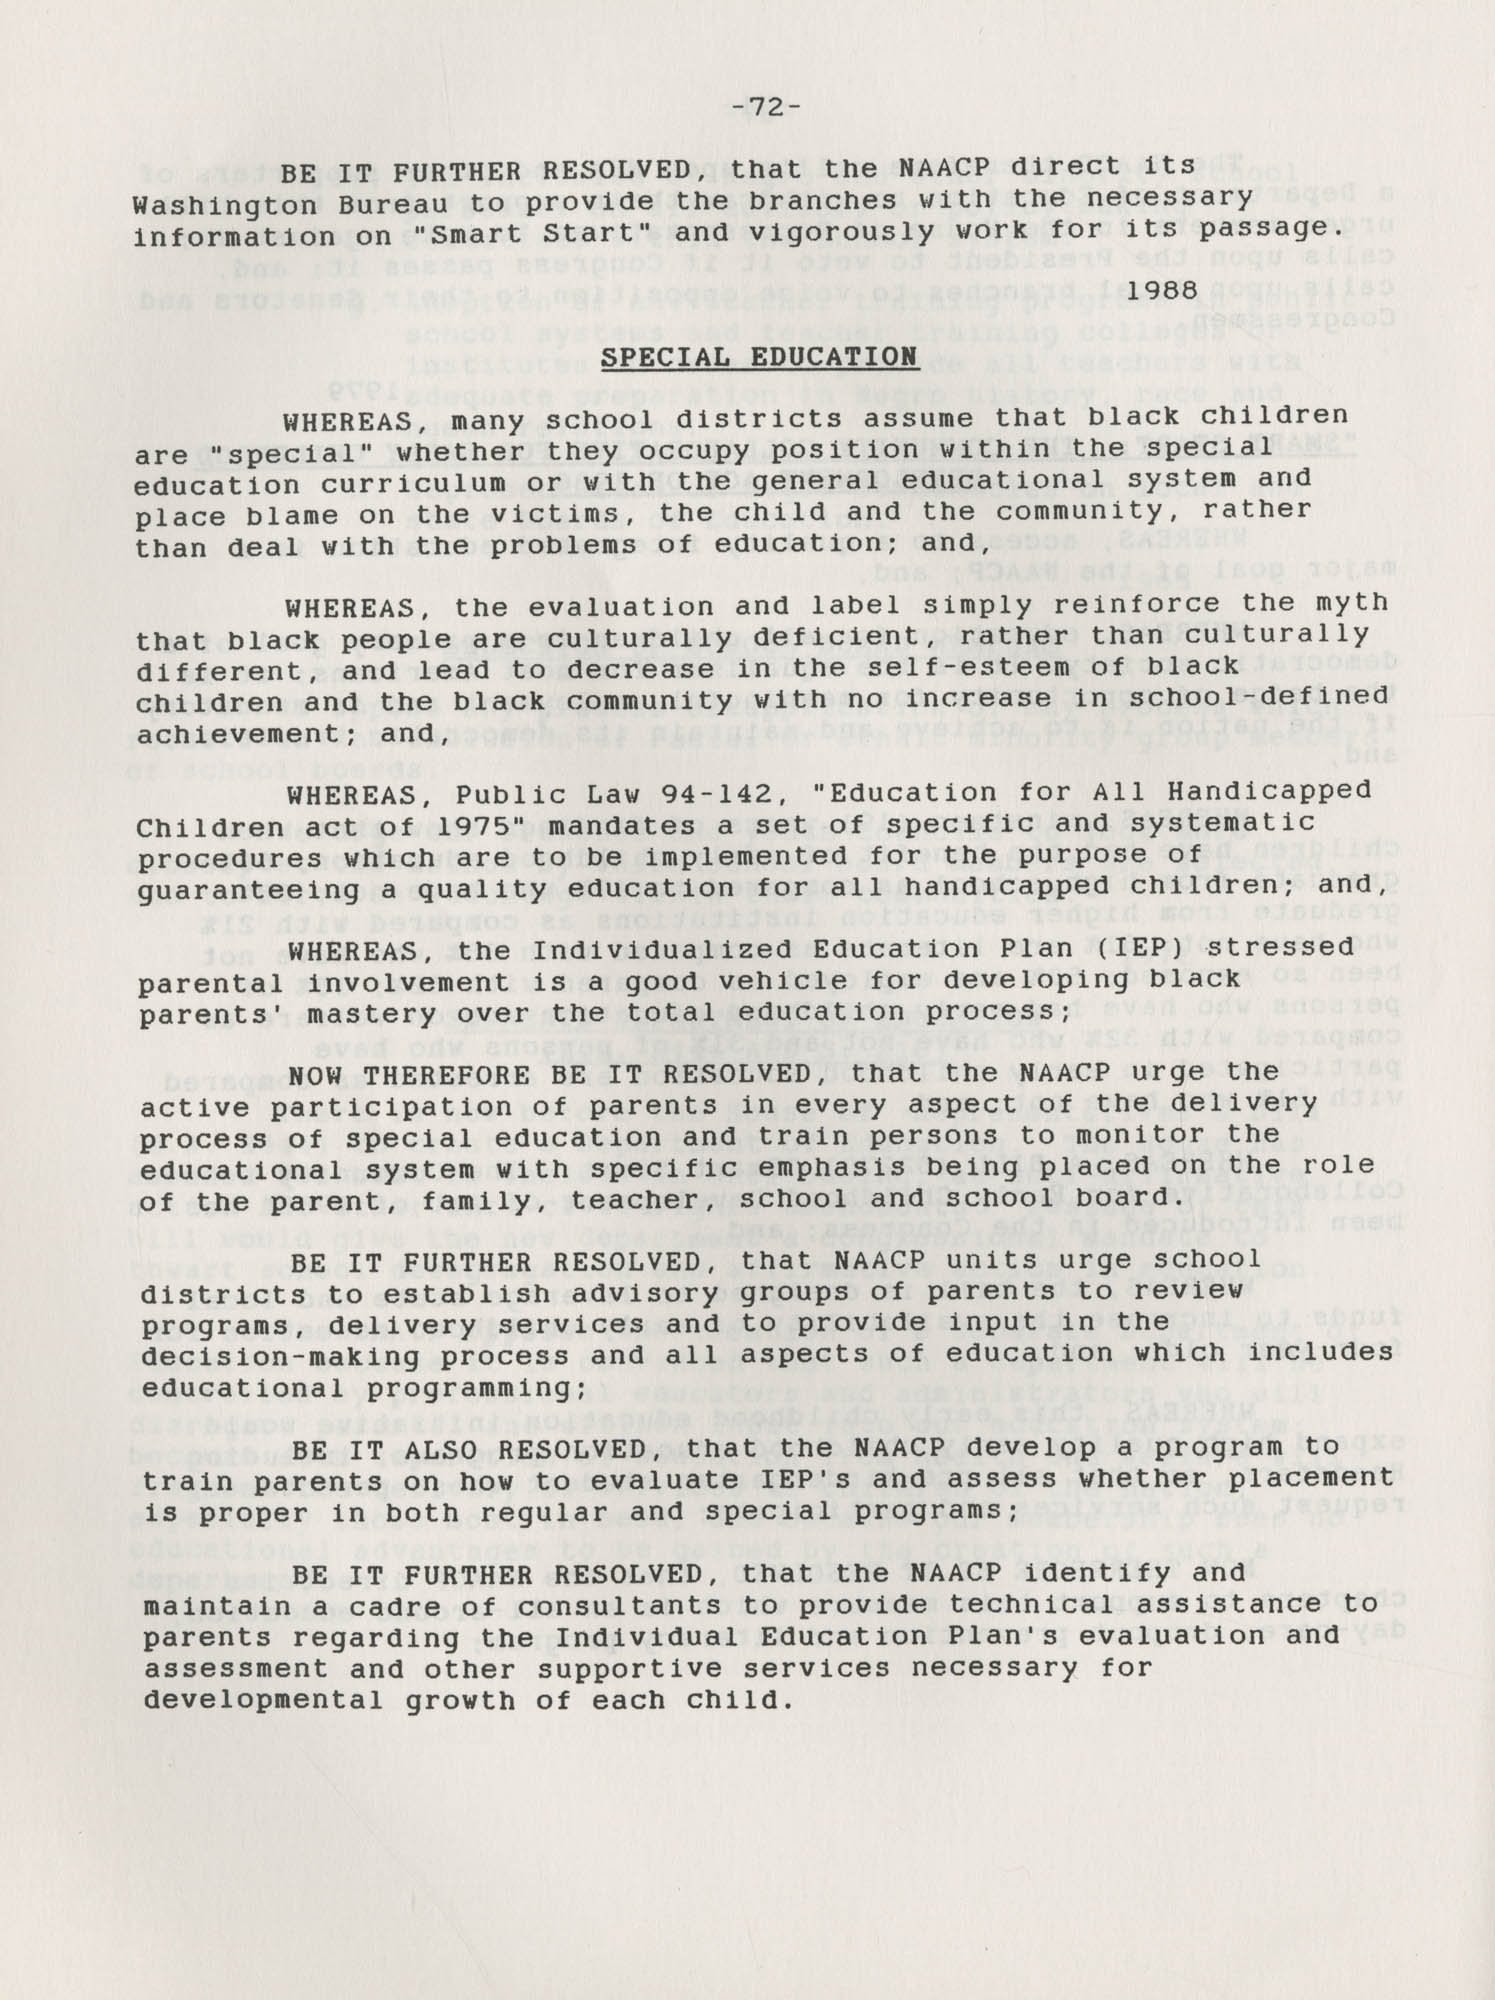 NAACP Resolutions on Education, 1970-1989, Index to Education Resolutions, Page 72